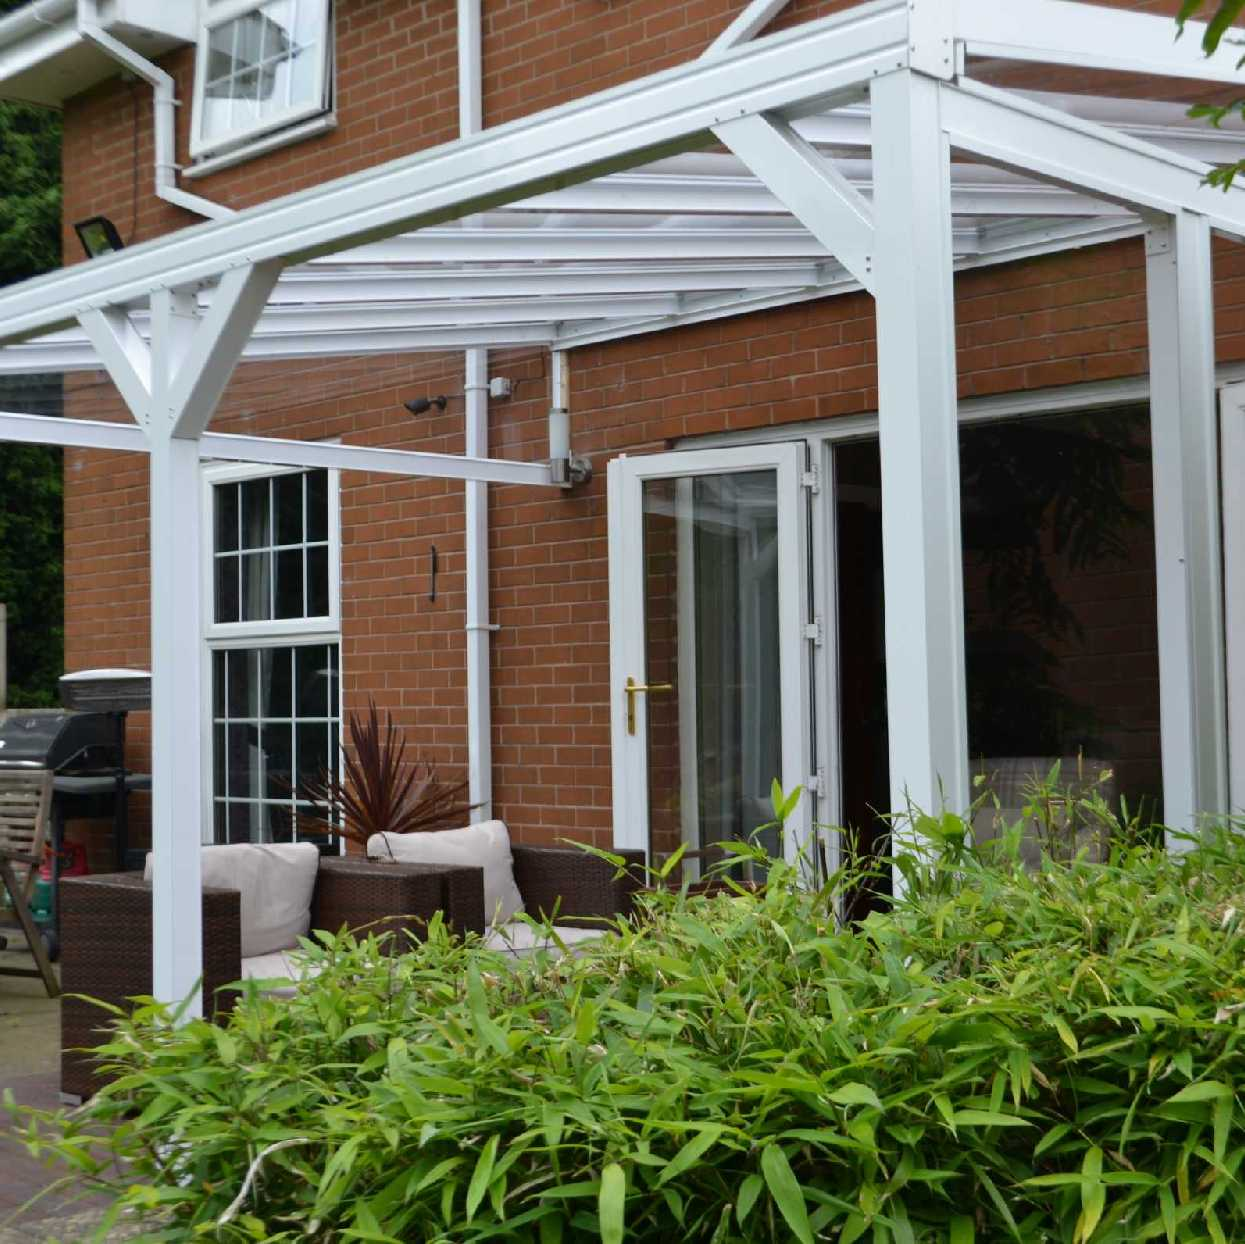 Omega Smart White Lean-To Canopy with 6mm Glass Clear Plate Polycarbonate Glazing - 9.8m (W) x 3.5m (P), (5) Supporting Posts from Omega Build